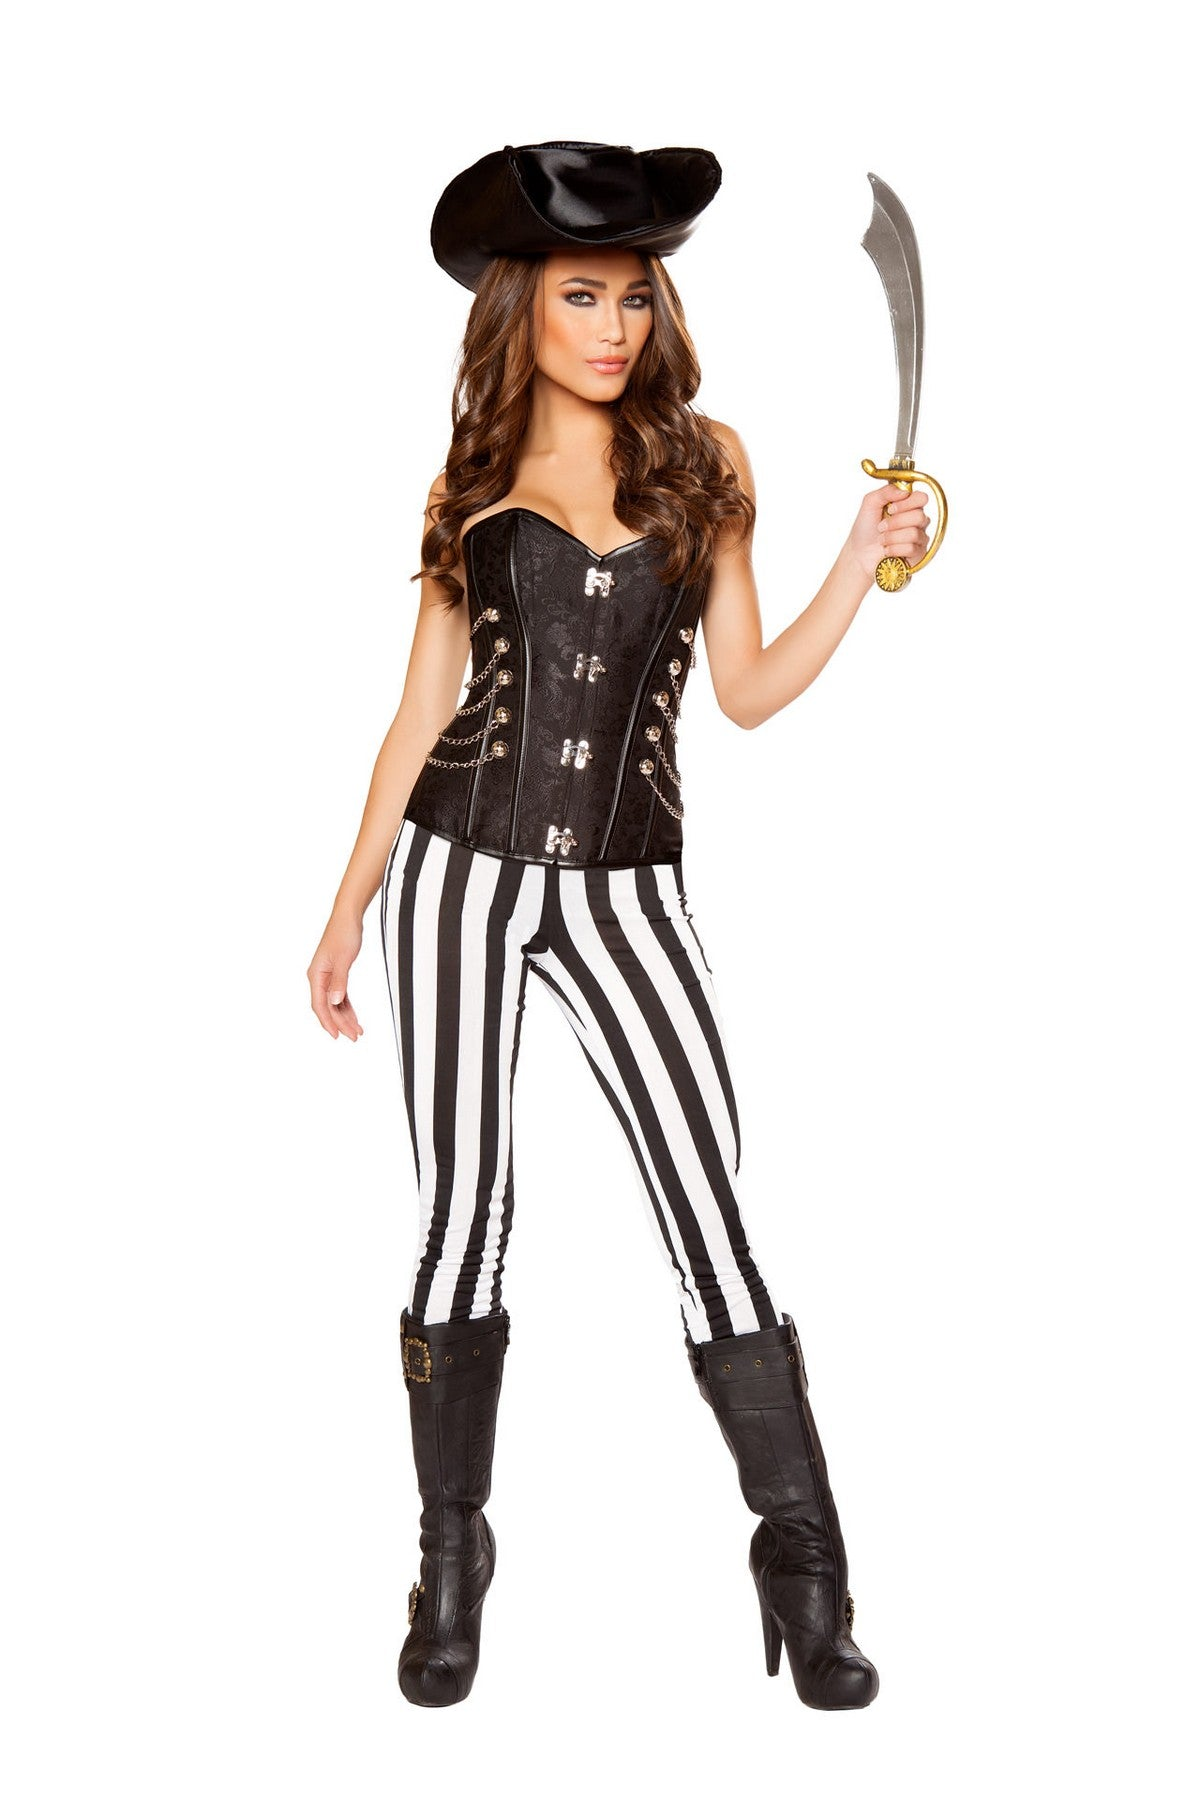 Deluxe Pirate Hottie Costume Set